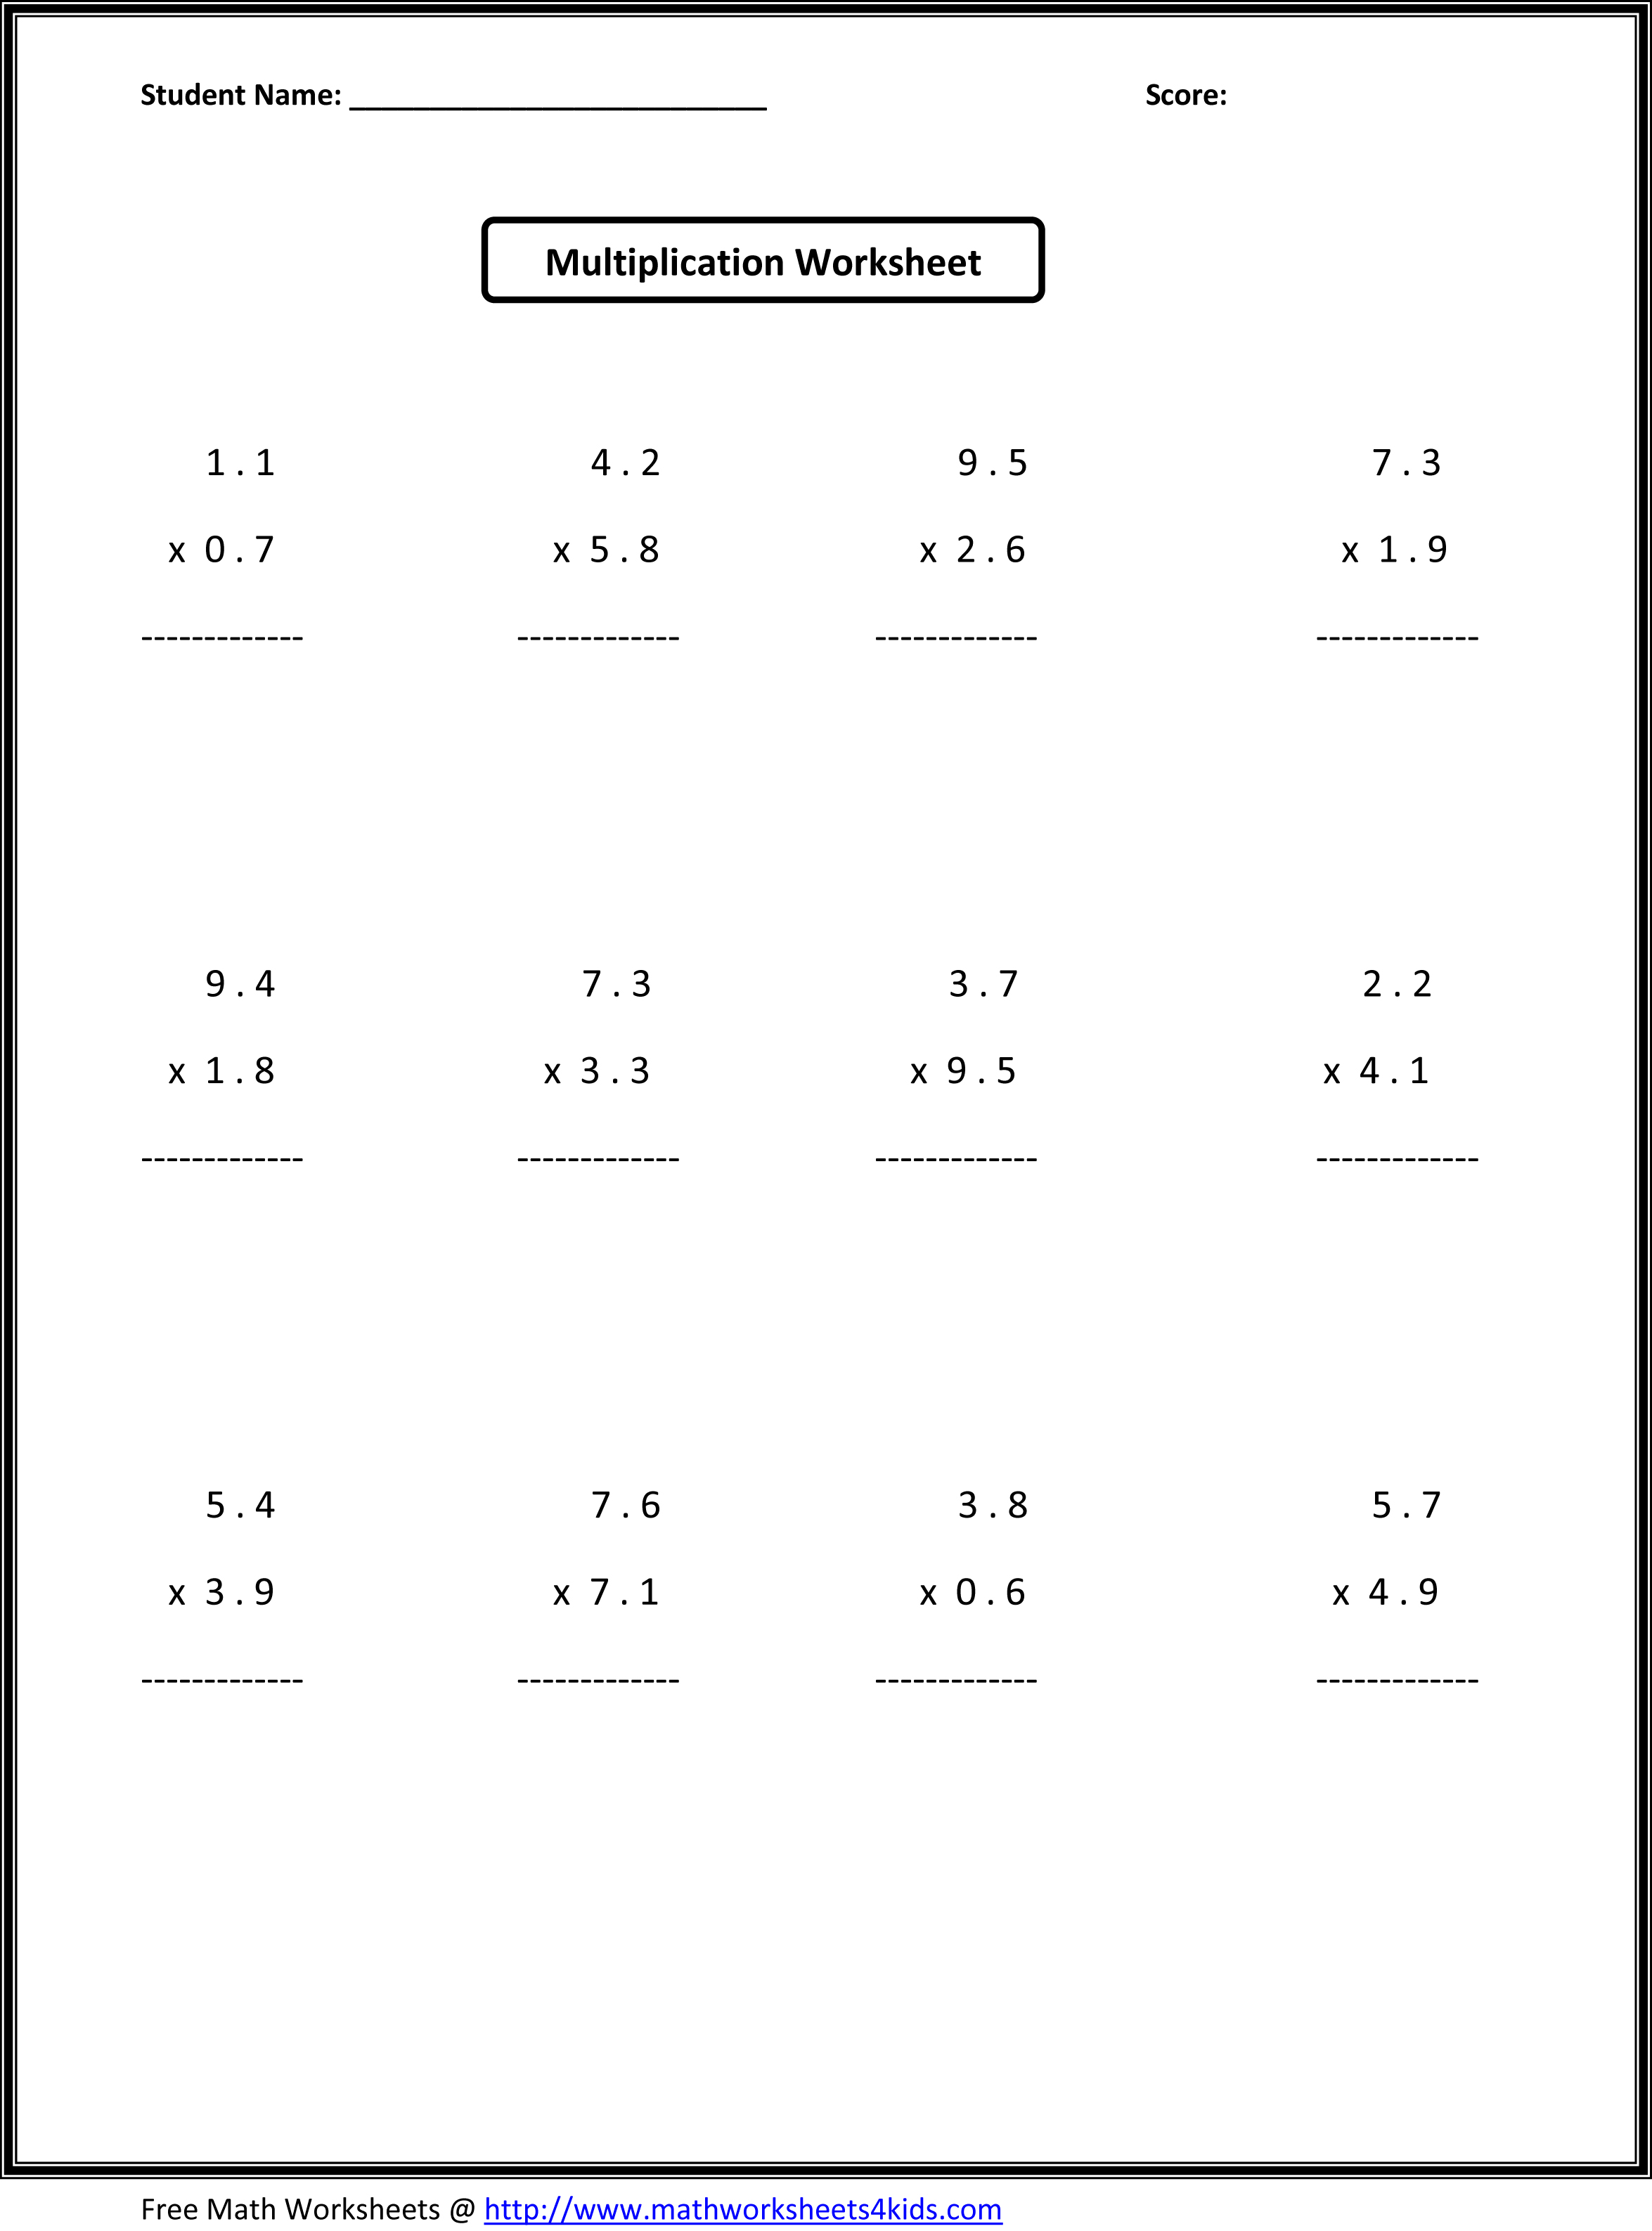 Printables Free Printable Math Worksheets 6th Grade printable worksheet for 6th grade math html standard 7th worksheets curriculum based